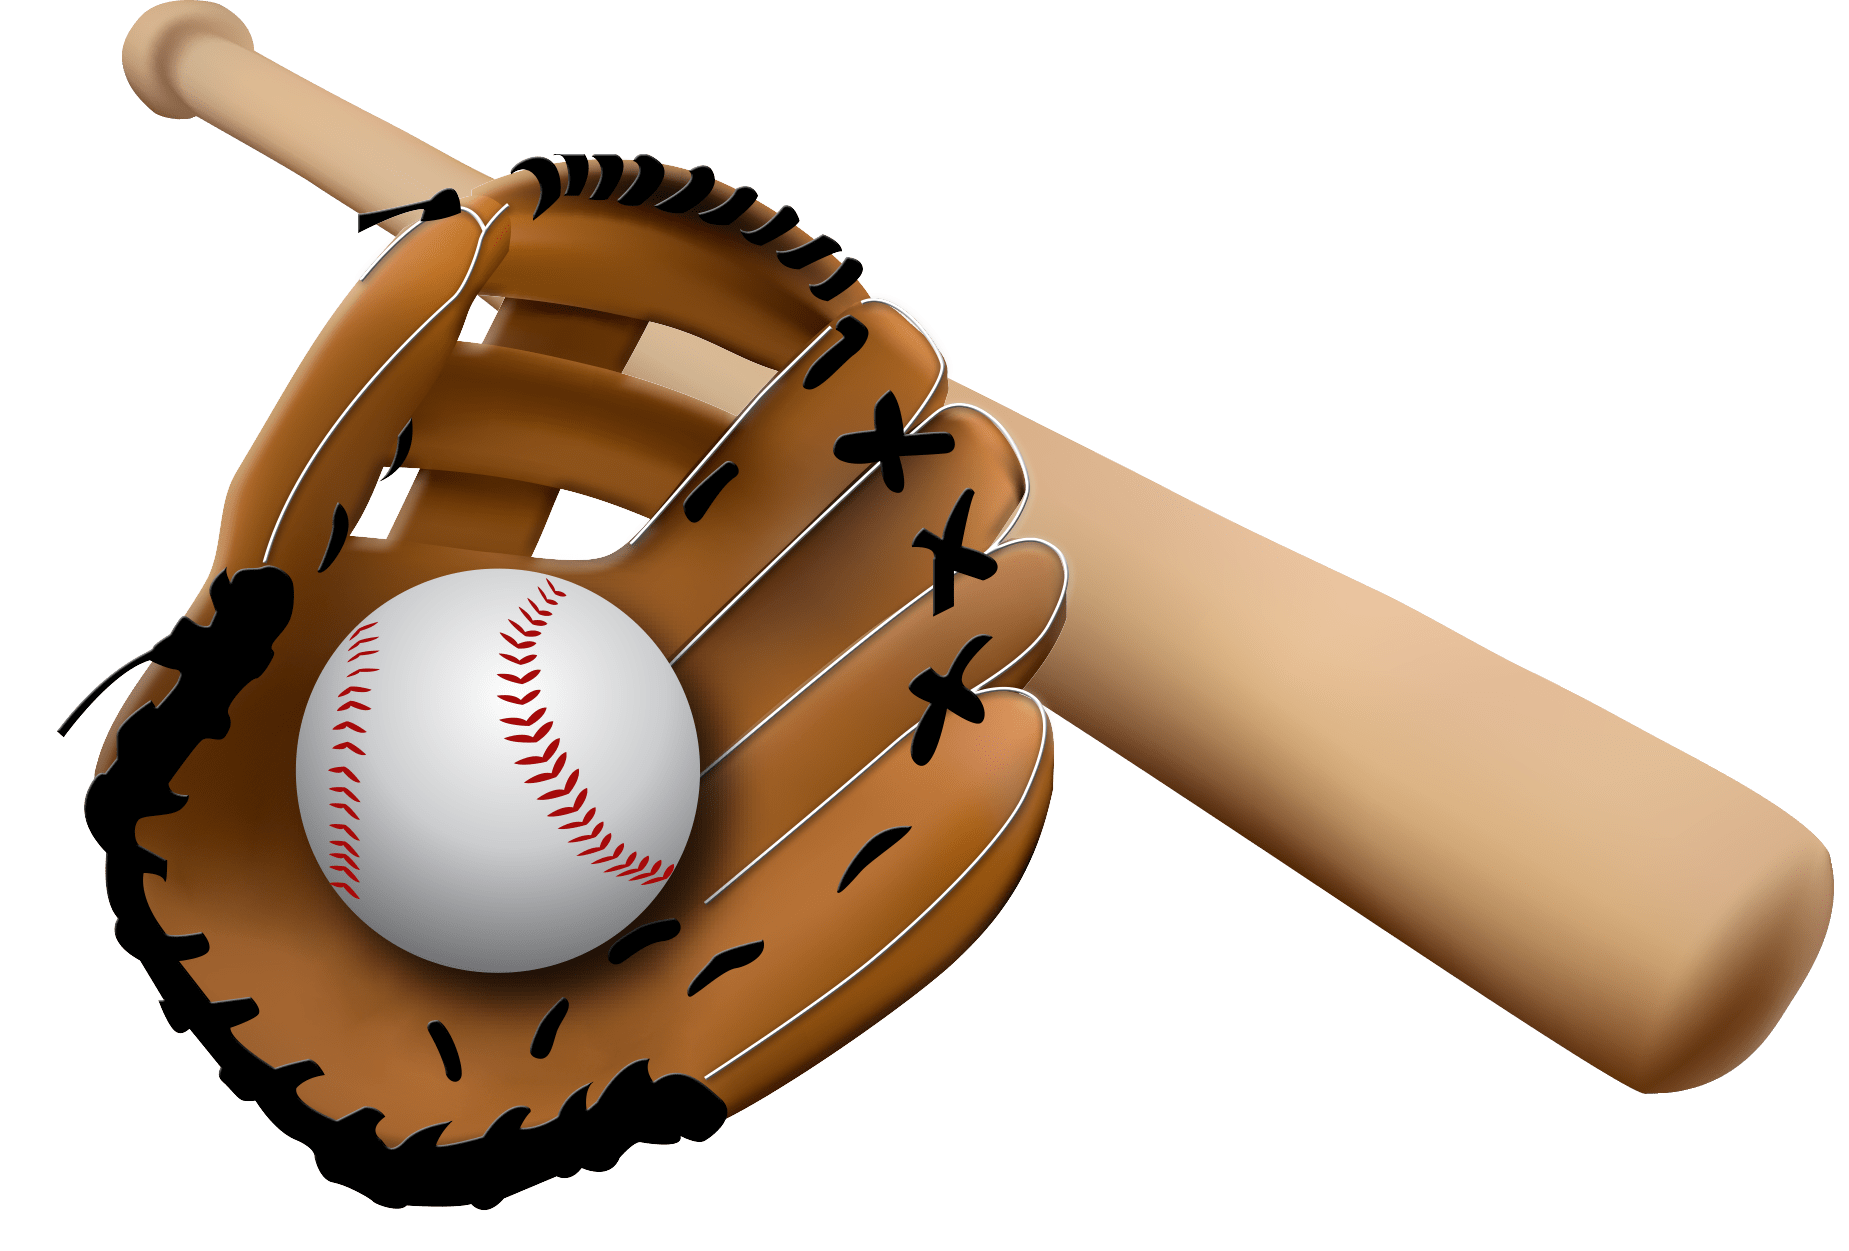 Baseball bat and ball png. Glove transparent stickpng